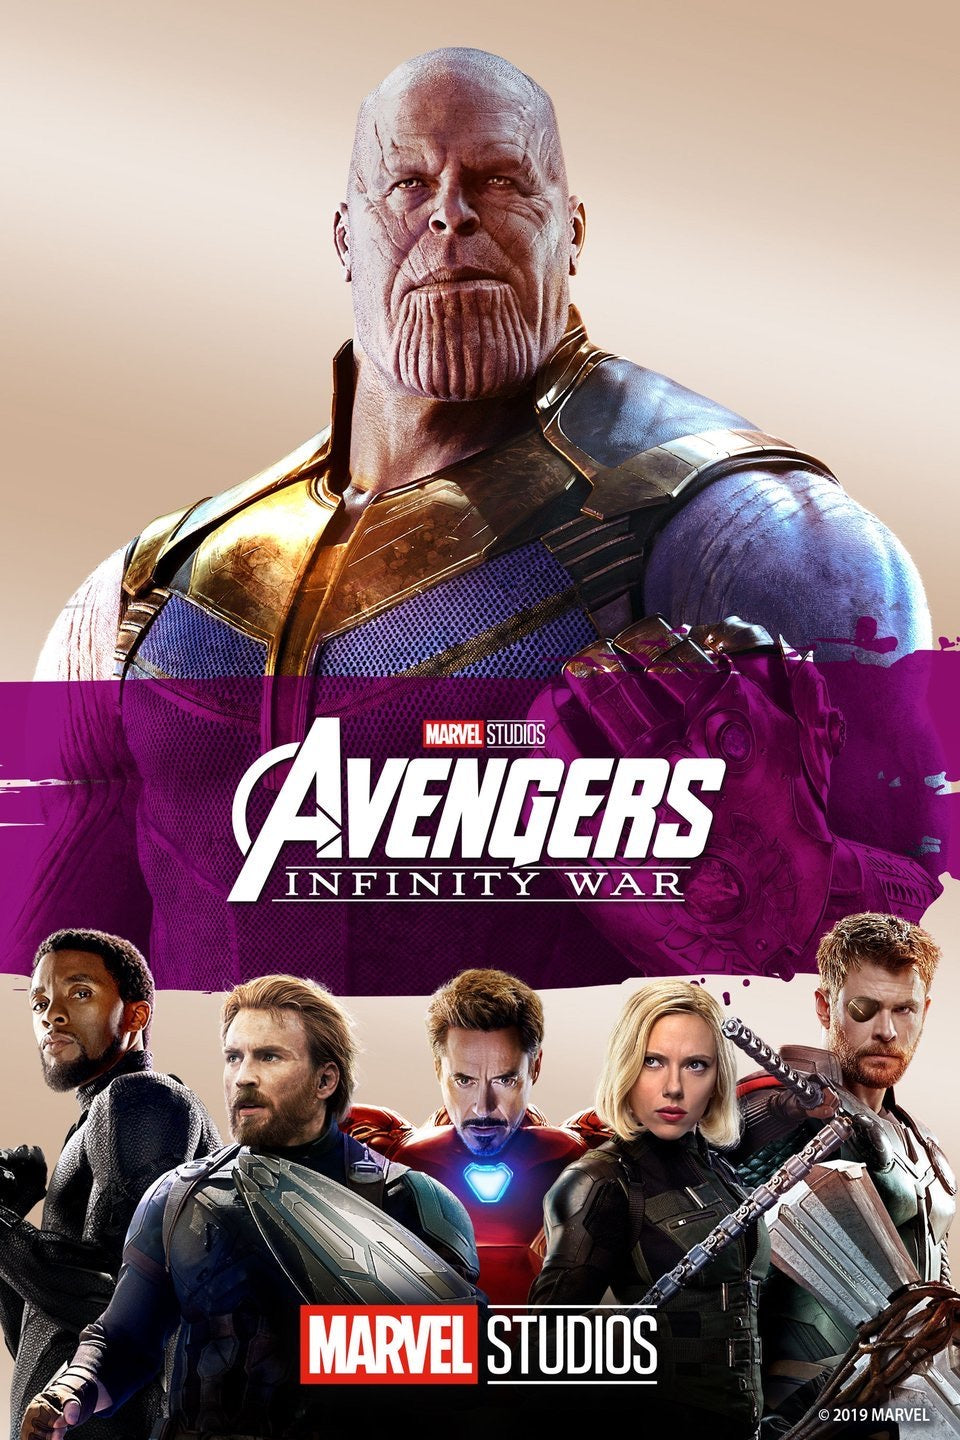 Avengers: Infinity War (2018) Vudu or Movies Anywhere HD redemption only